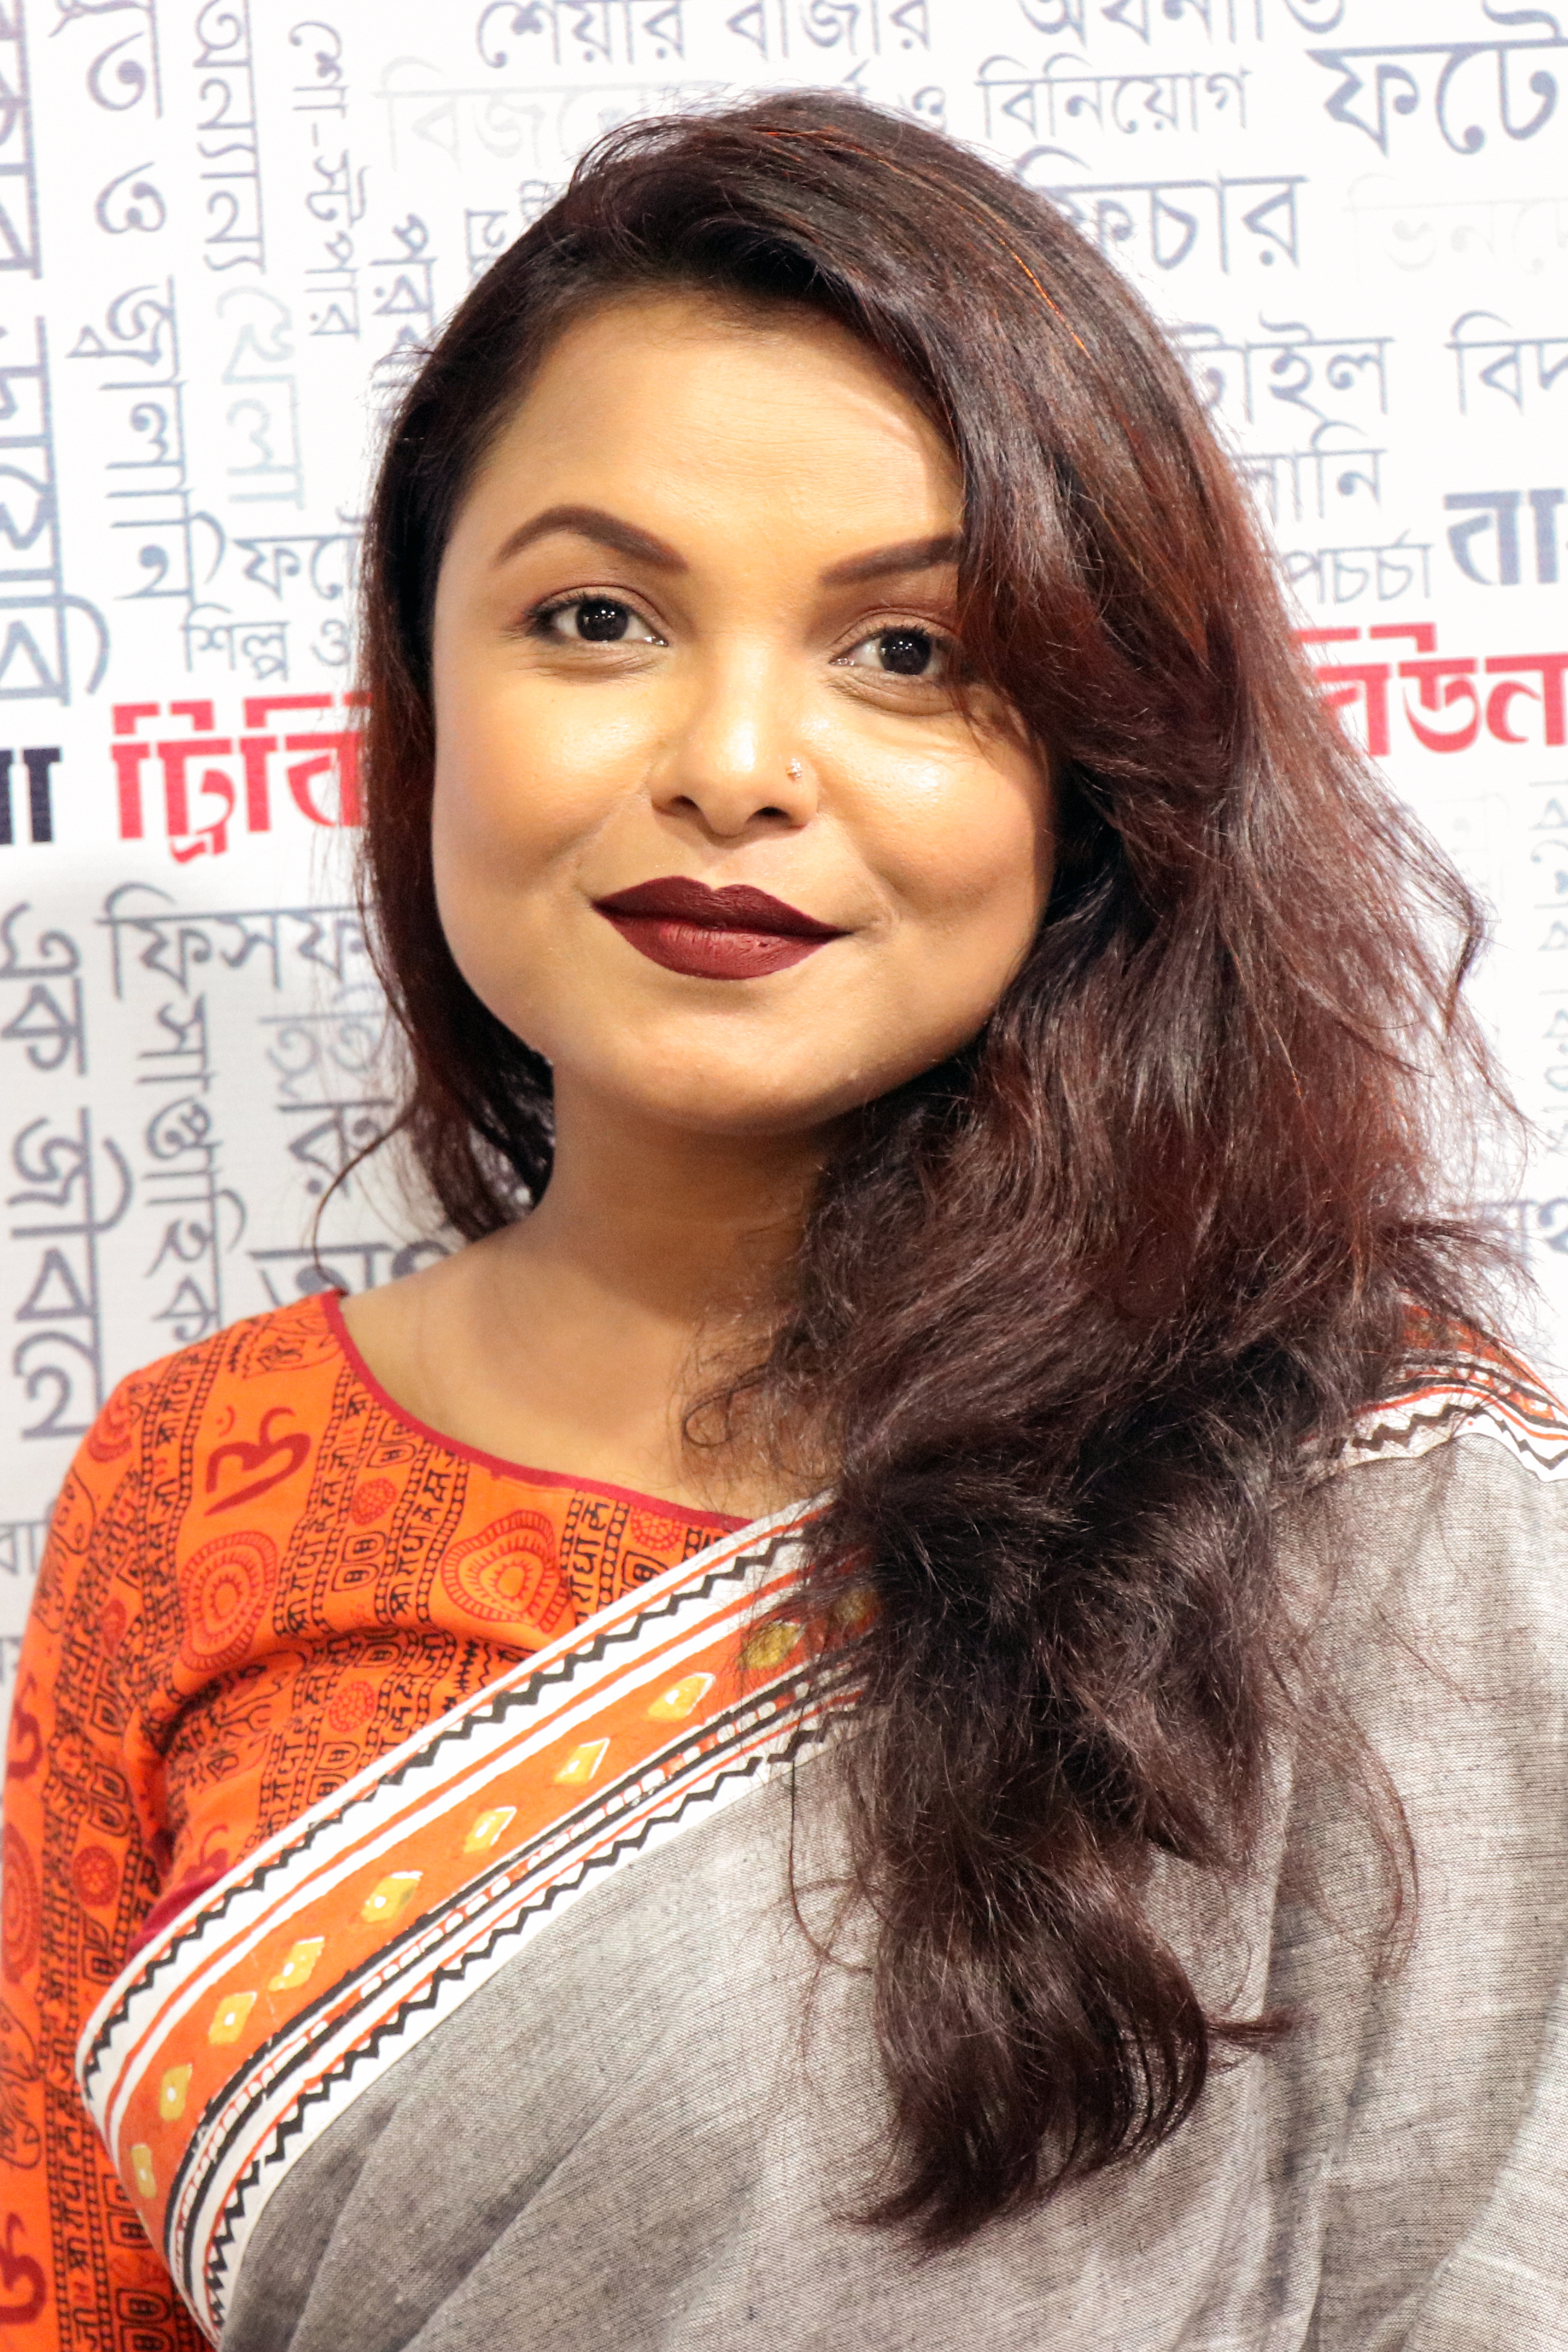 Meher Afroz Shaon Wikipedia